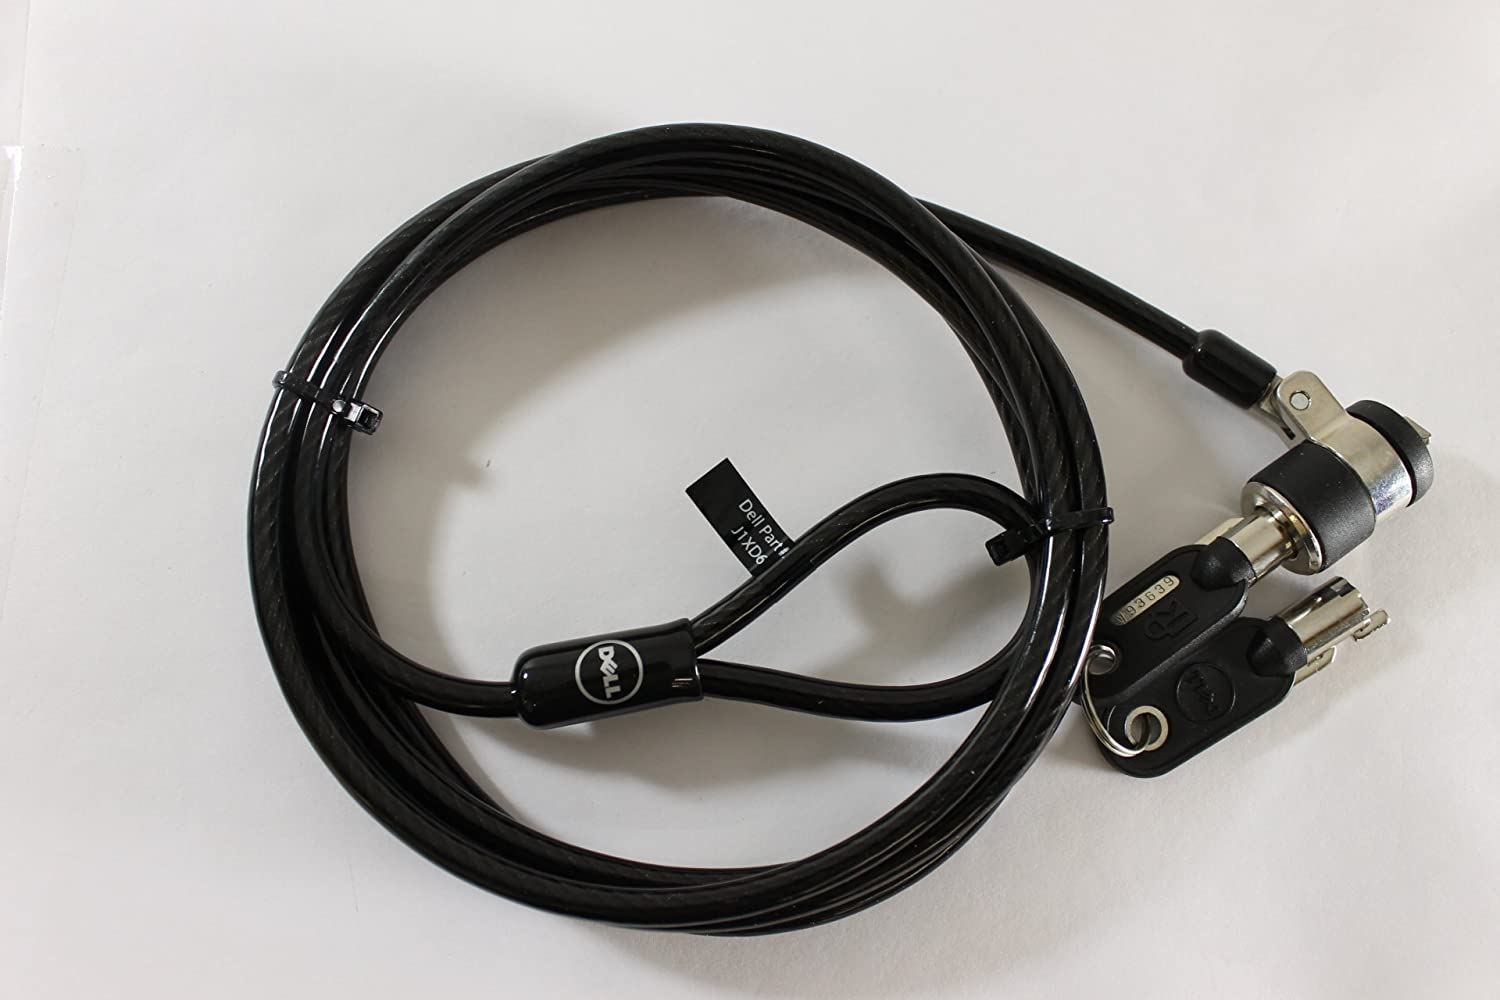 Dell J1XD6 6ft Premium Universal Laptop Security Keyed Cable Lock